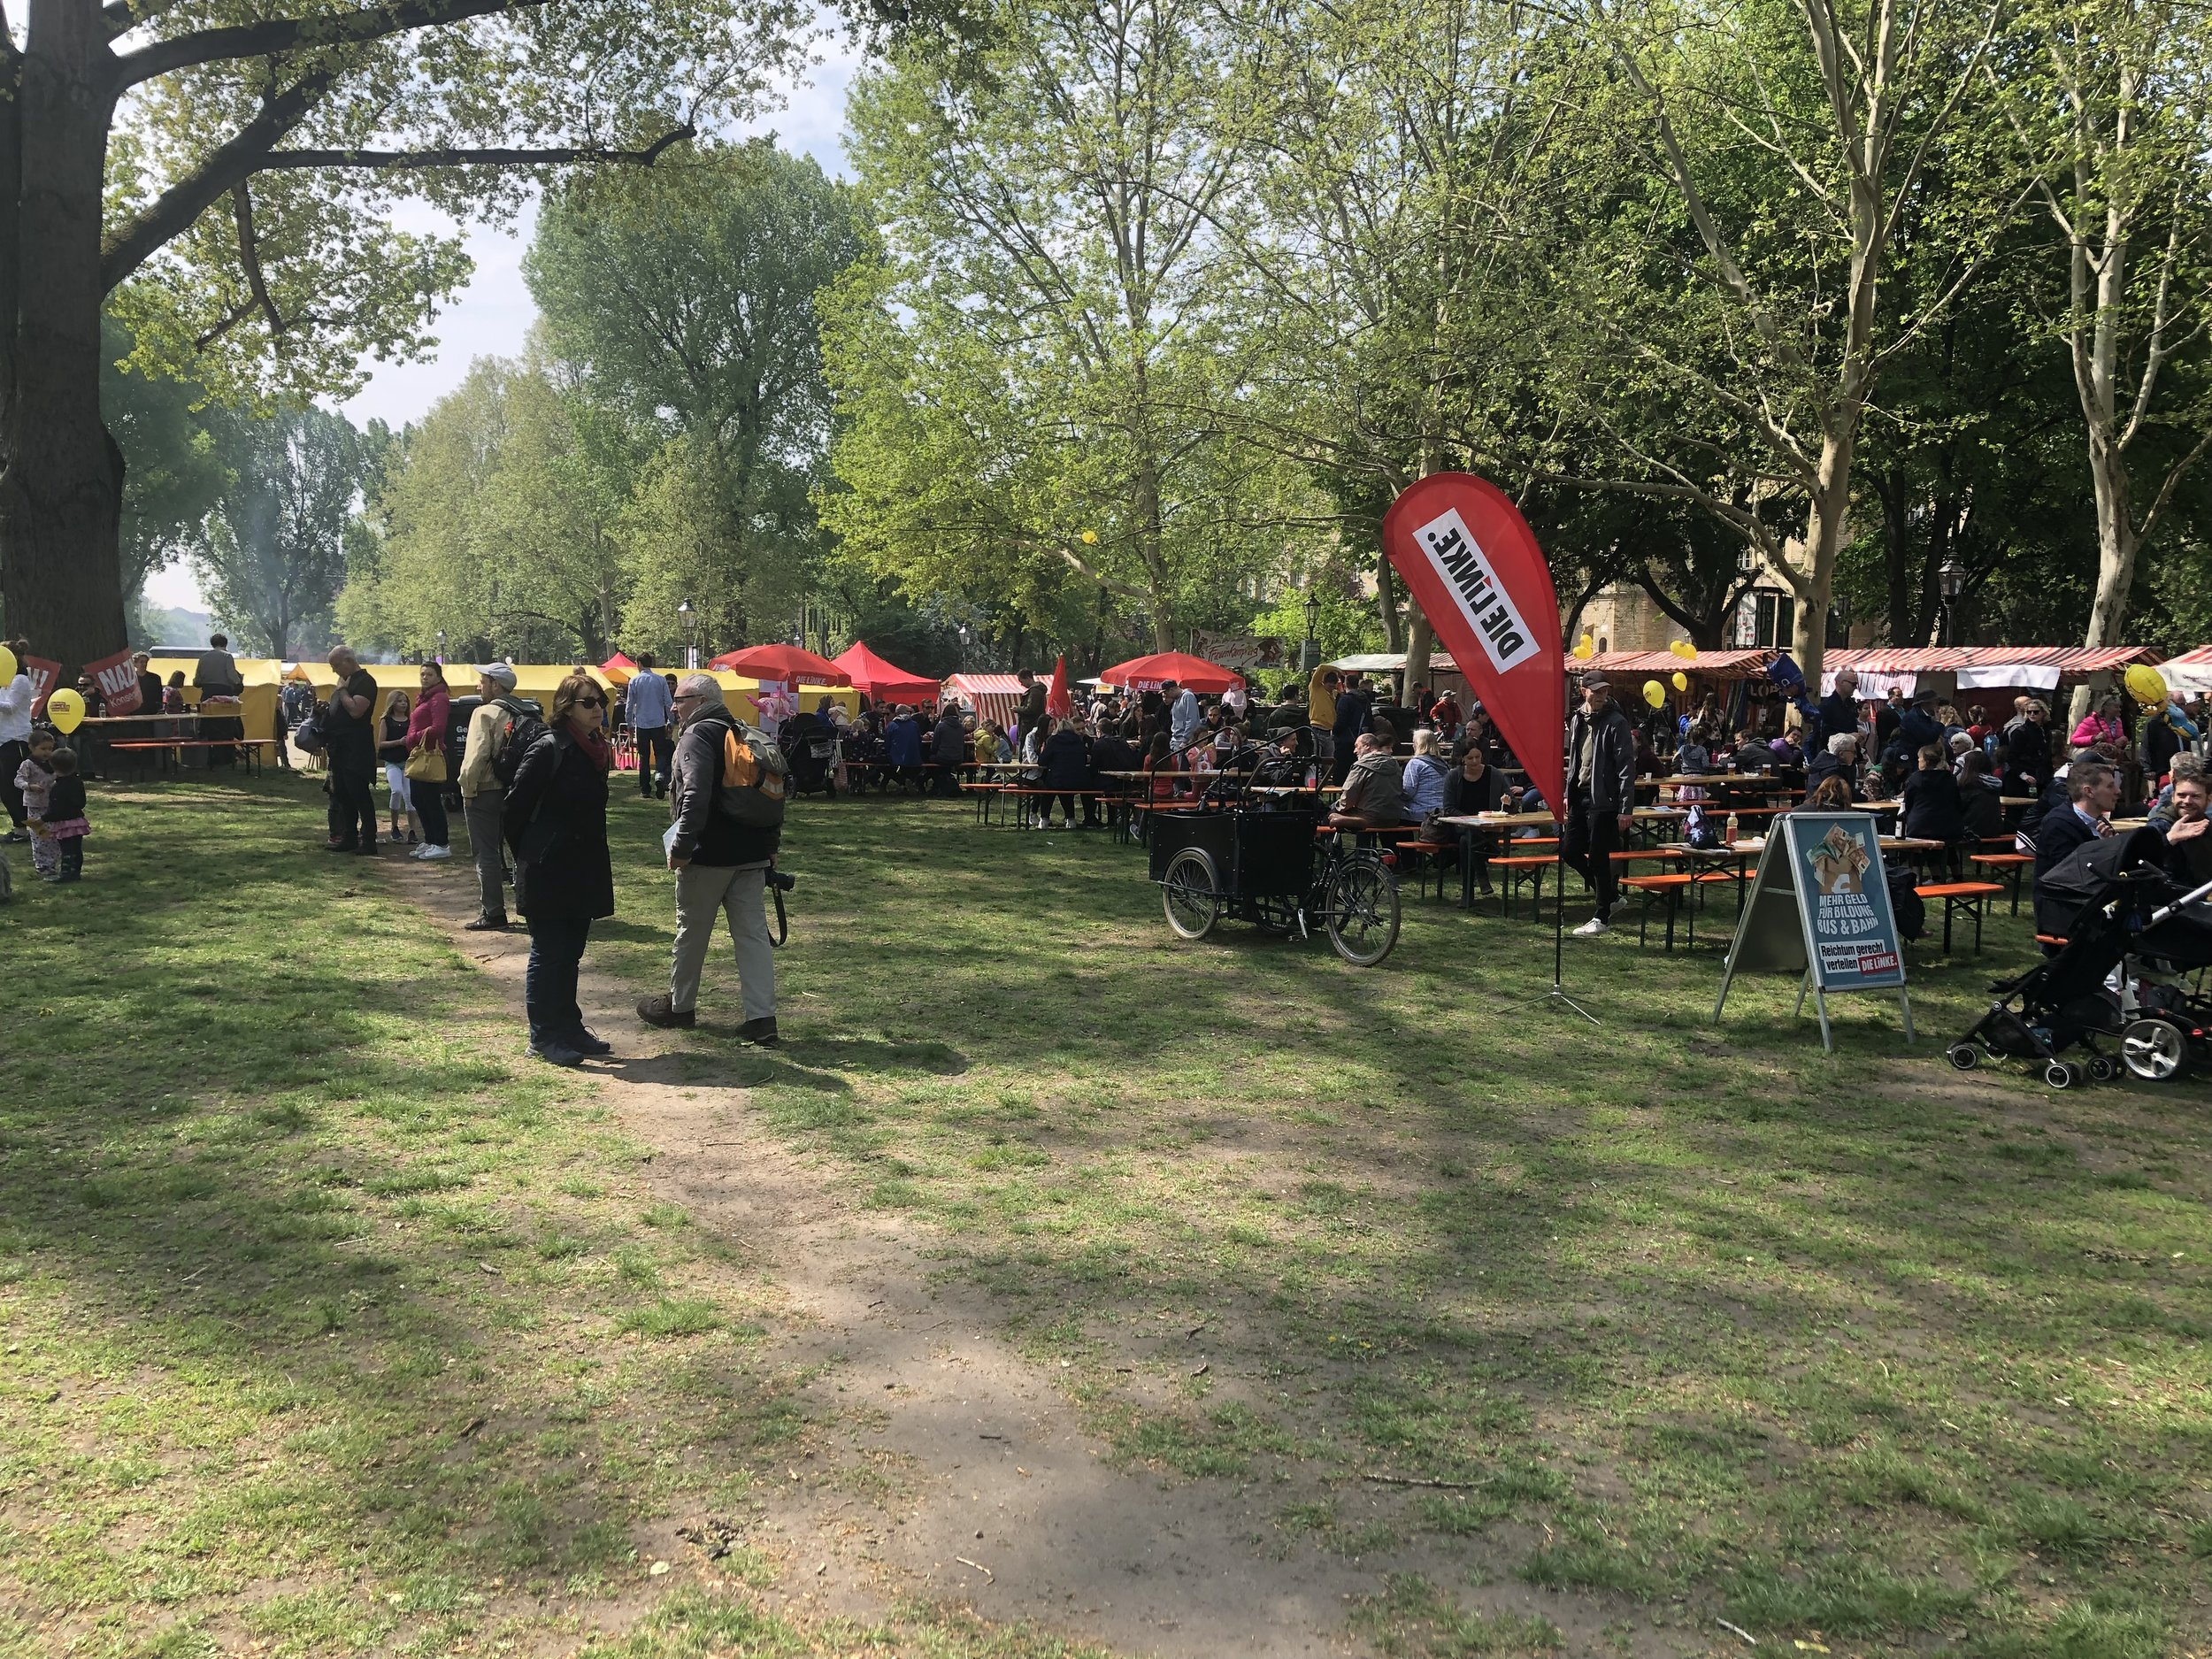 The 2019 MyFest in Kreuzberg. Picnic benches, families, and a few political pamphlets on Mariannenplatz.